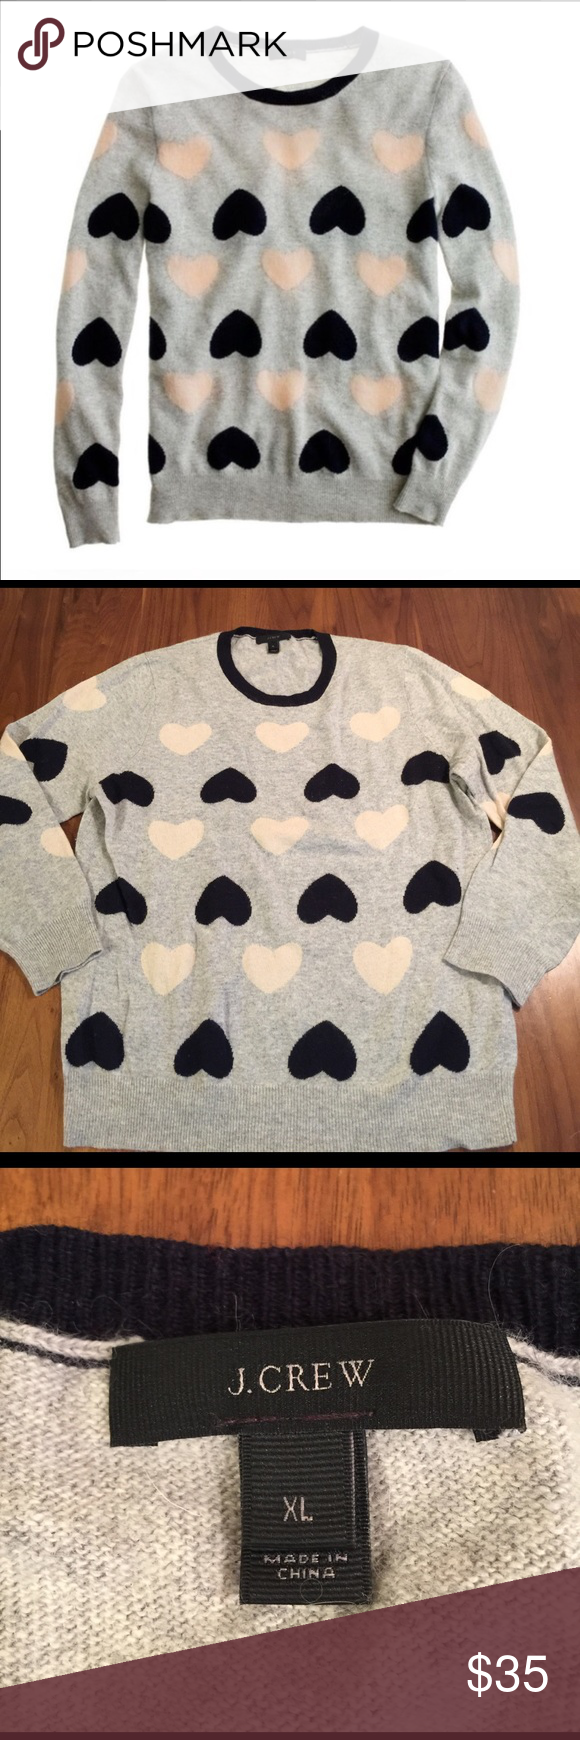 """J. Crew Heartbreaker Sweater We're full of affection for our playful intarsia sweaters in our signature blend of wool and angora. Each one features cheeky designs that are intarsia knit into the sweater instead of on top—a more difficult and time-consuming process but totally worth it. Sweet, soft and covered in hearts, this one never misses a beat. 20""""across bust. 24.5"""" length.   Viscose/wool/nylon/angora in a 7-gauge knit. J. Crew Sweaters Crew & Scoop Necks"""